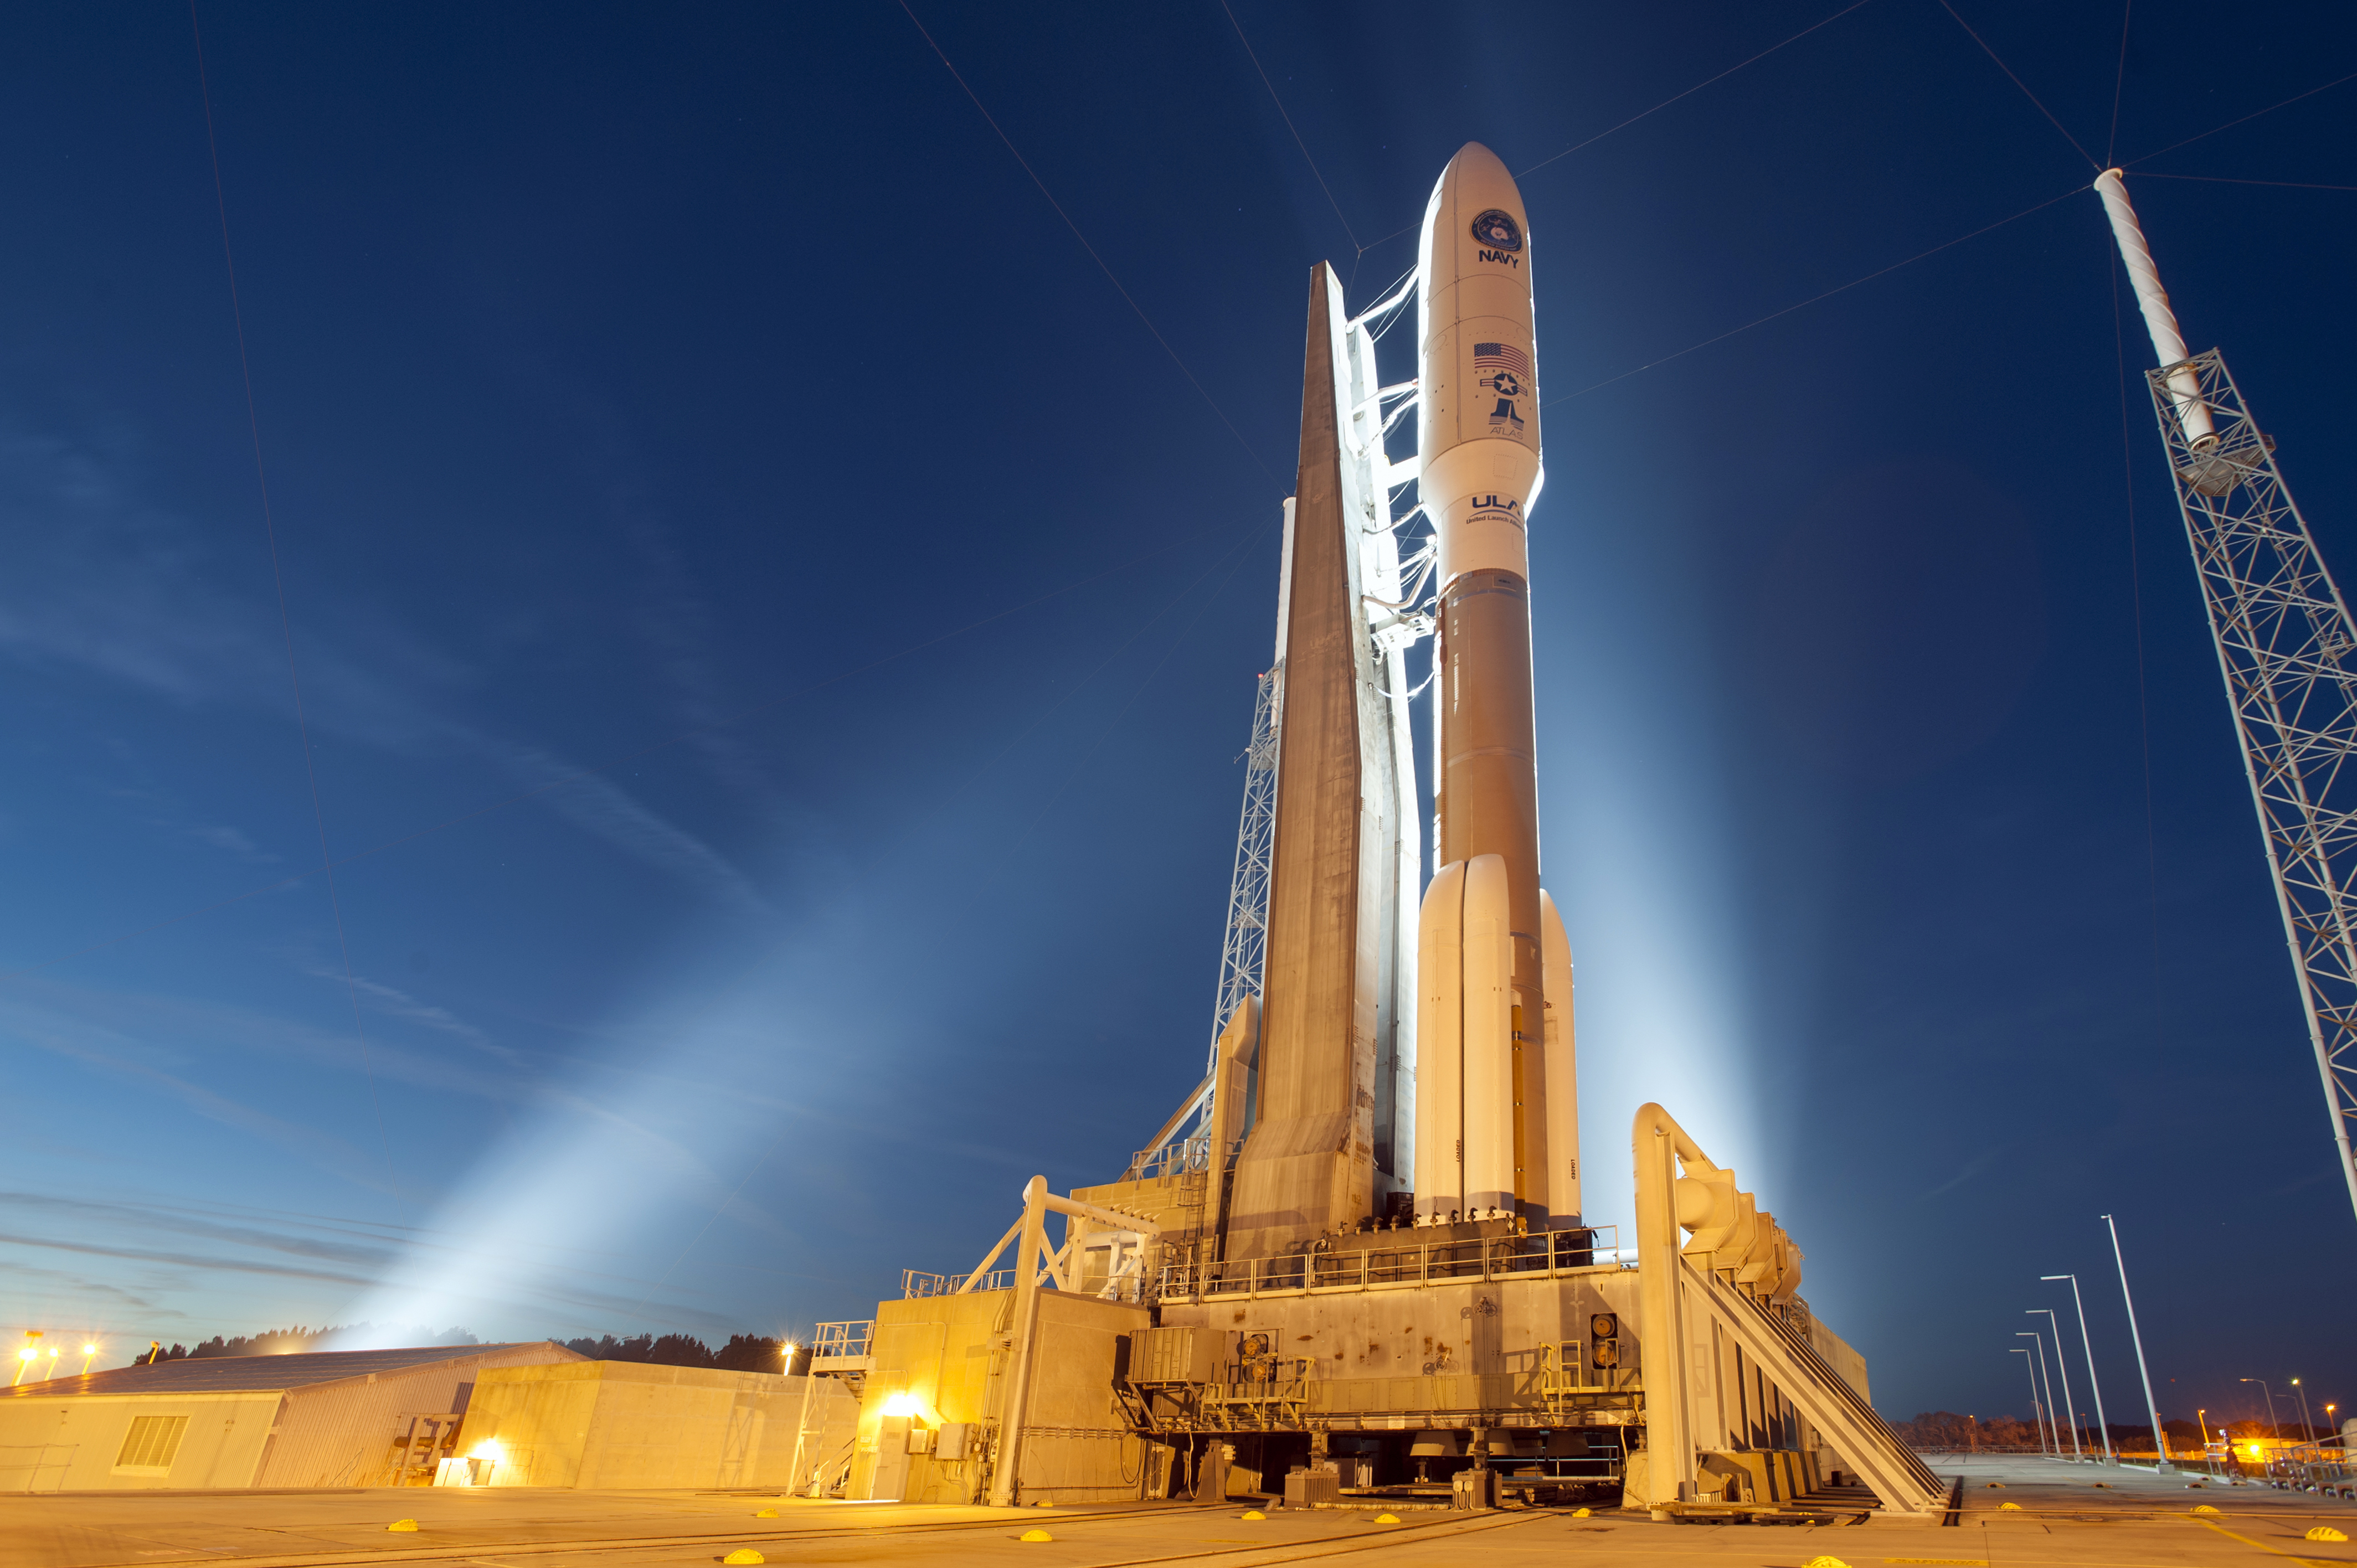 ula-beats-spacex-in-competition-for-an-air-force-satellite-launch